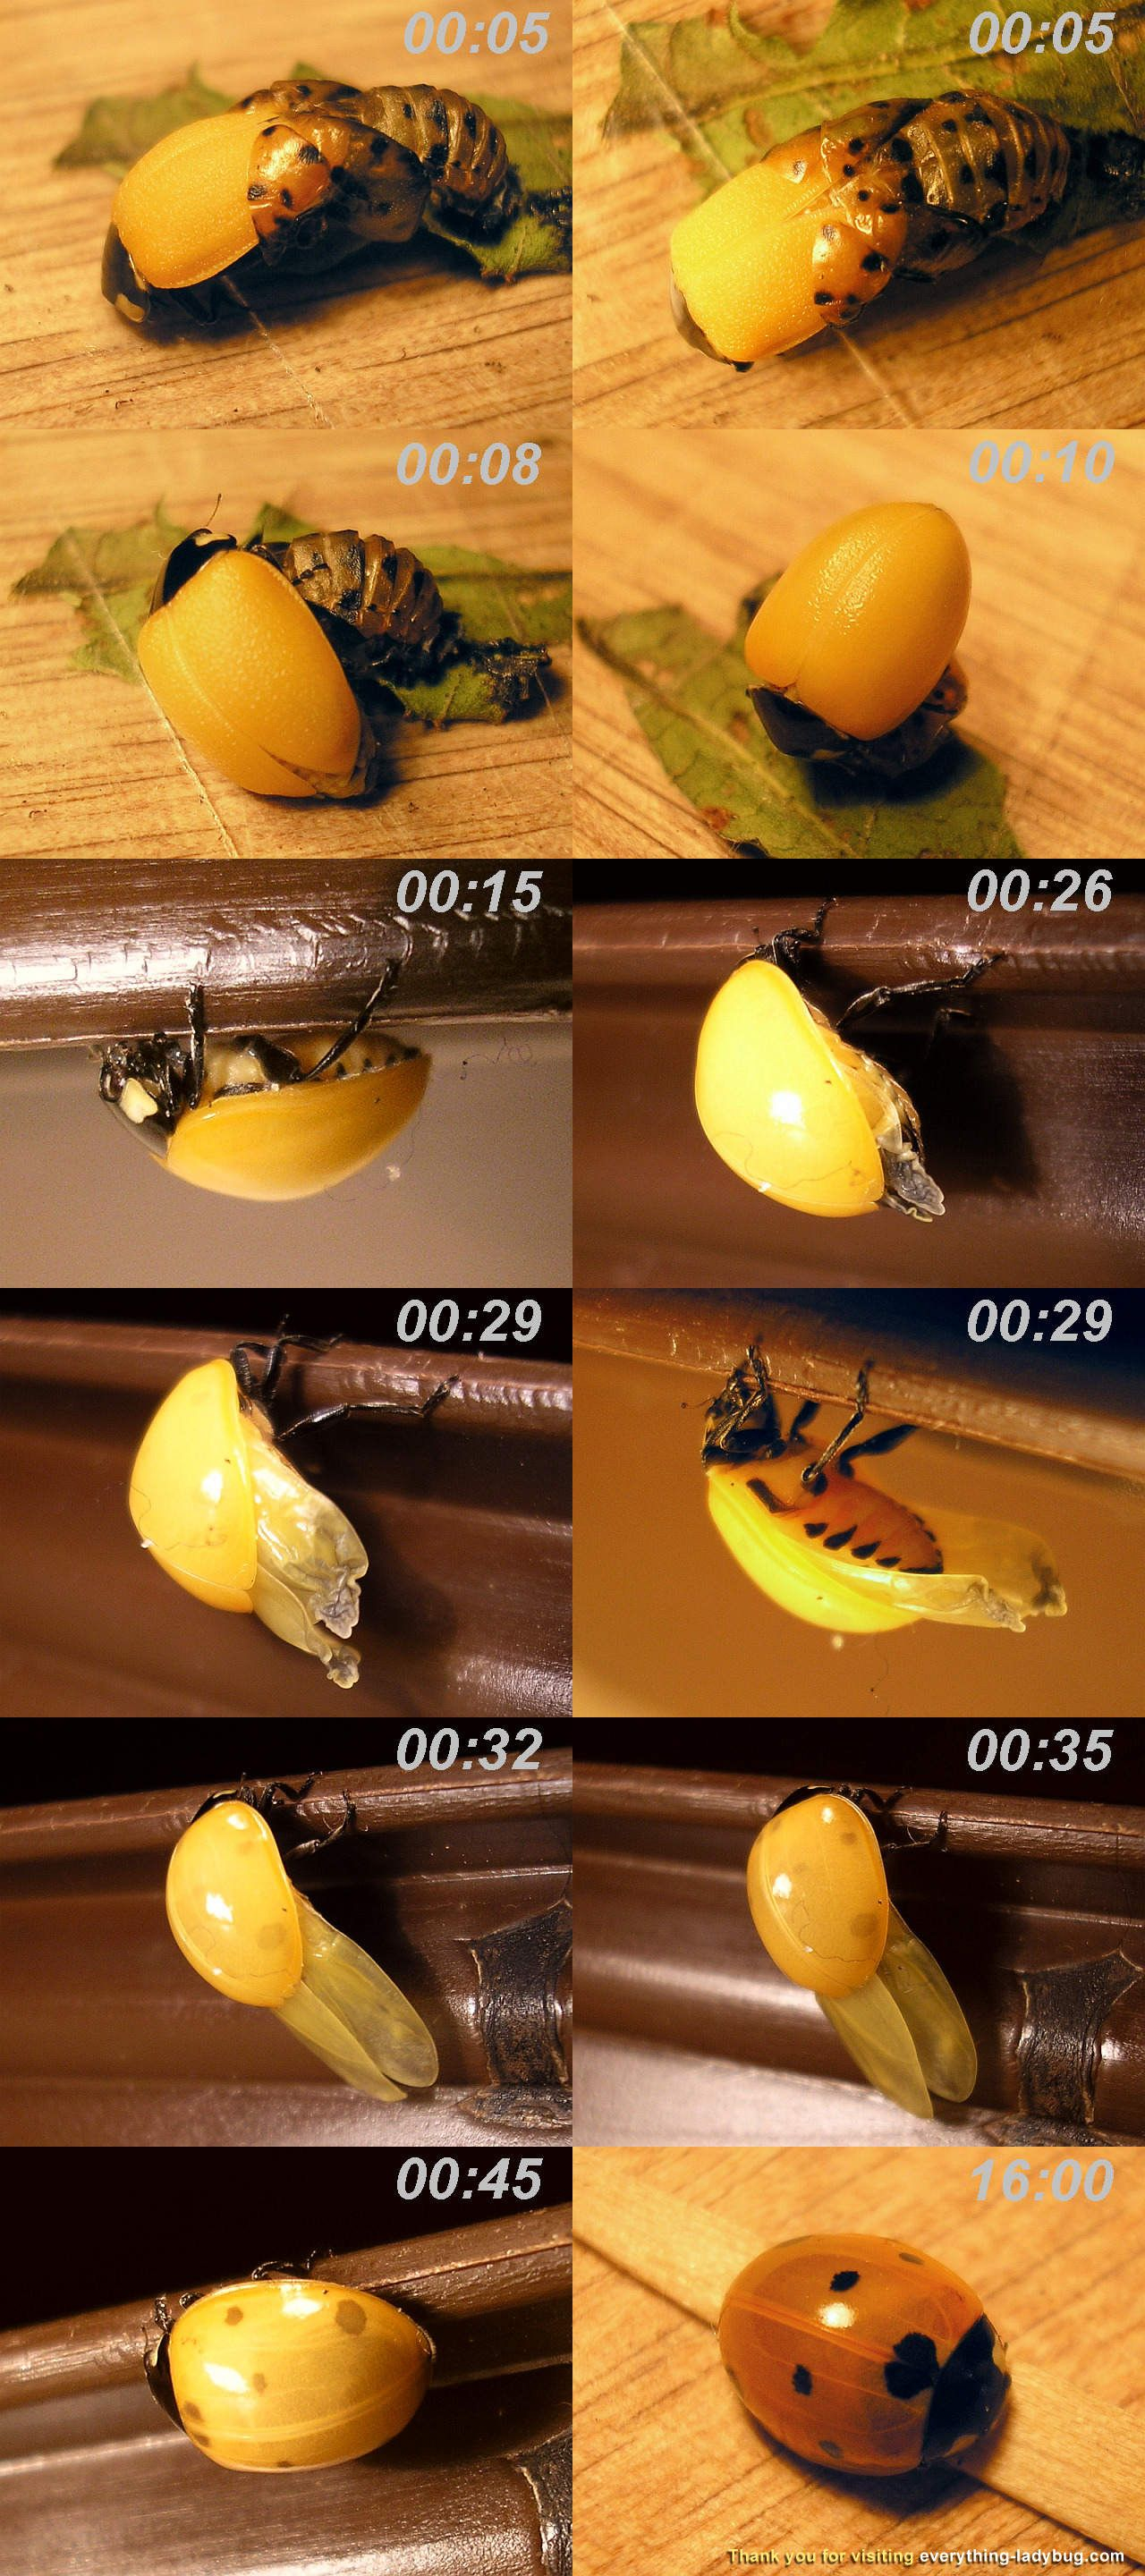 Coccinella septempunctata adult emerging from pupa, with